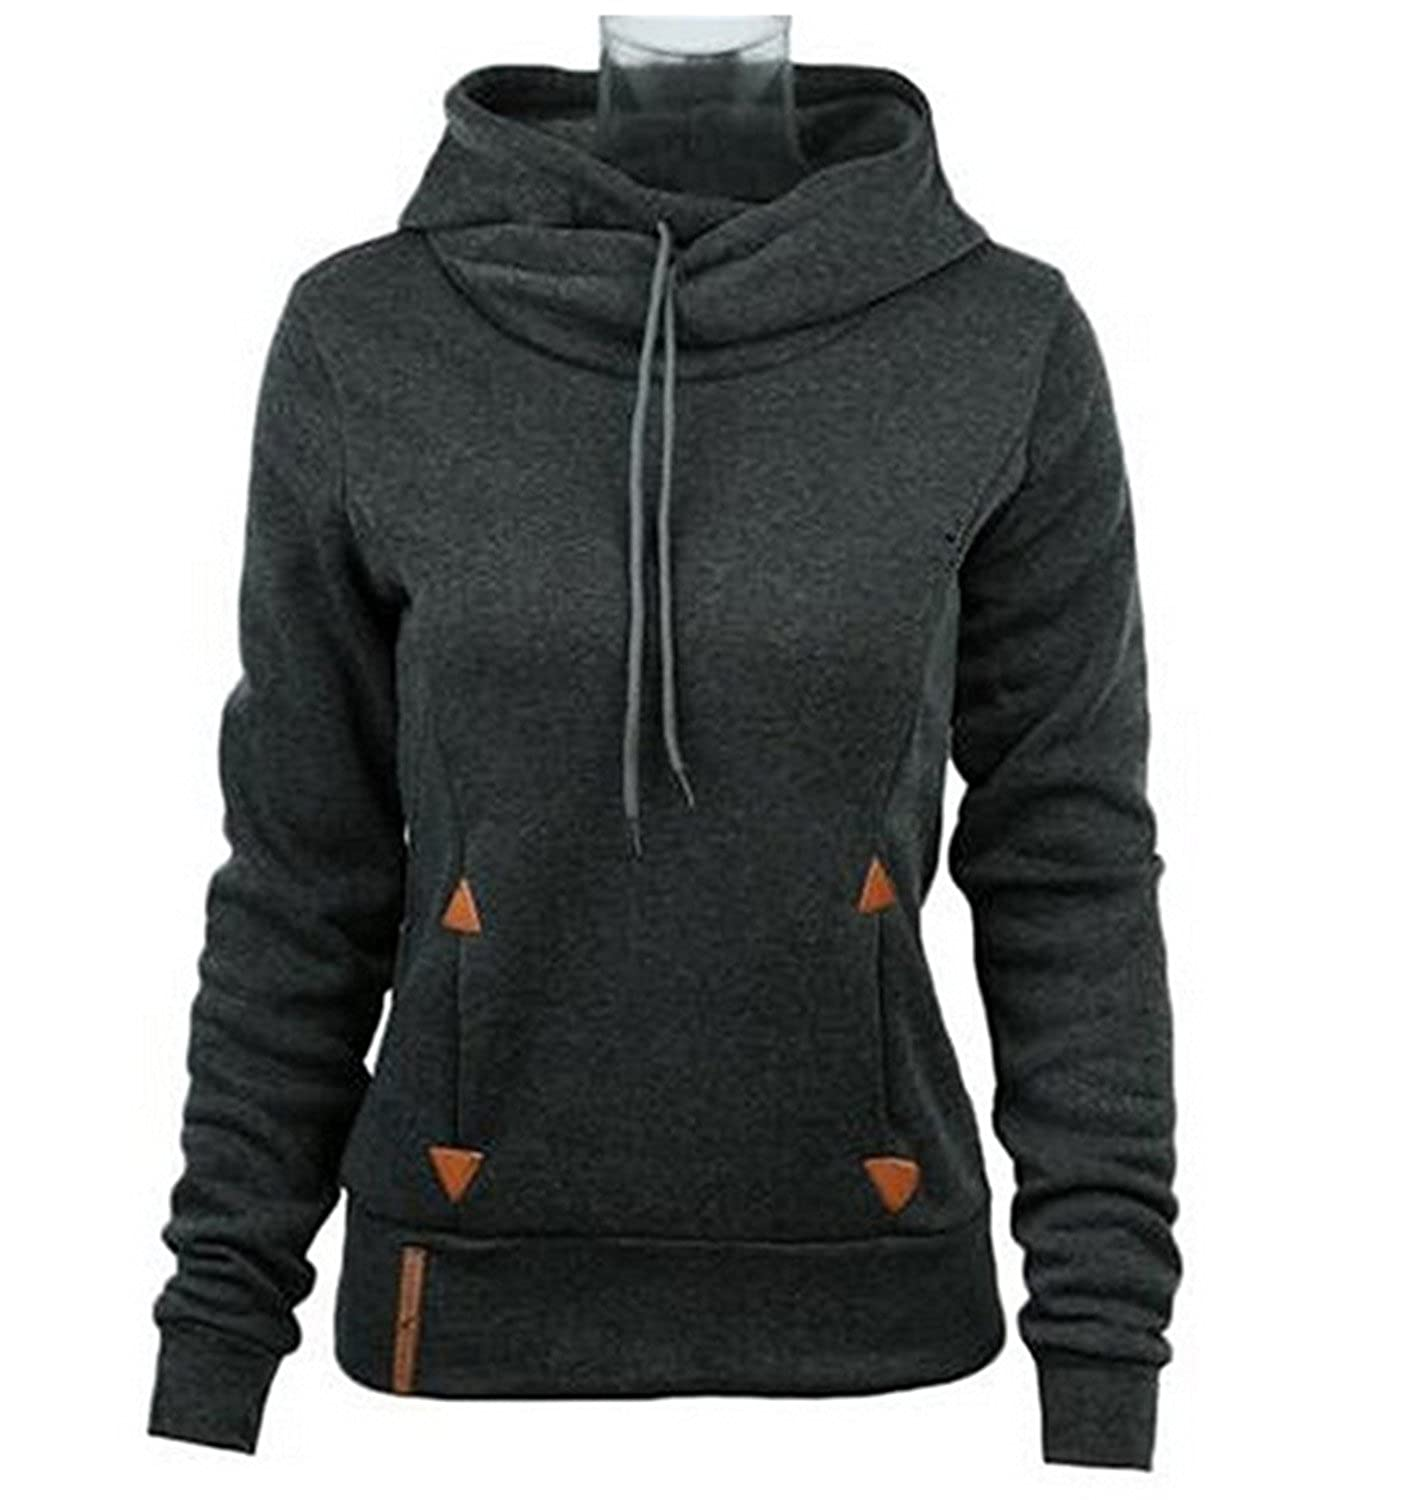 Amazon.com: Novelty-Hoodies Women Hoodies Self-Tie Pockets Pullover Hooded Loose Tops Hoodie for Women Sudaderas Mujer: Clothing